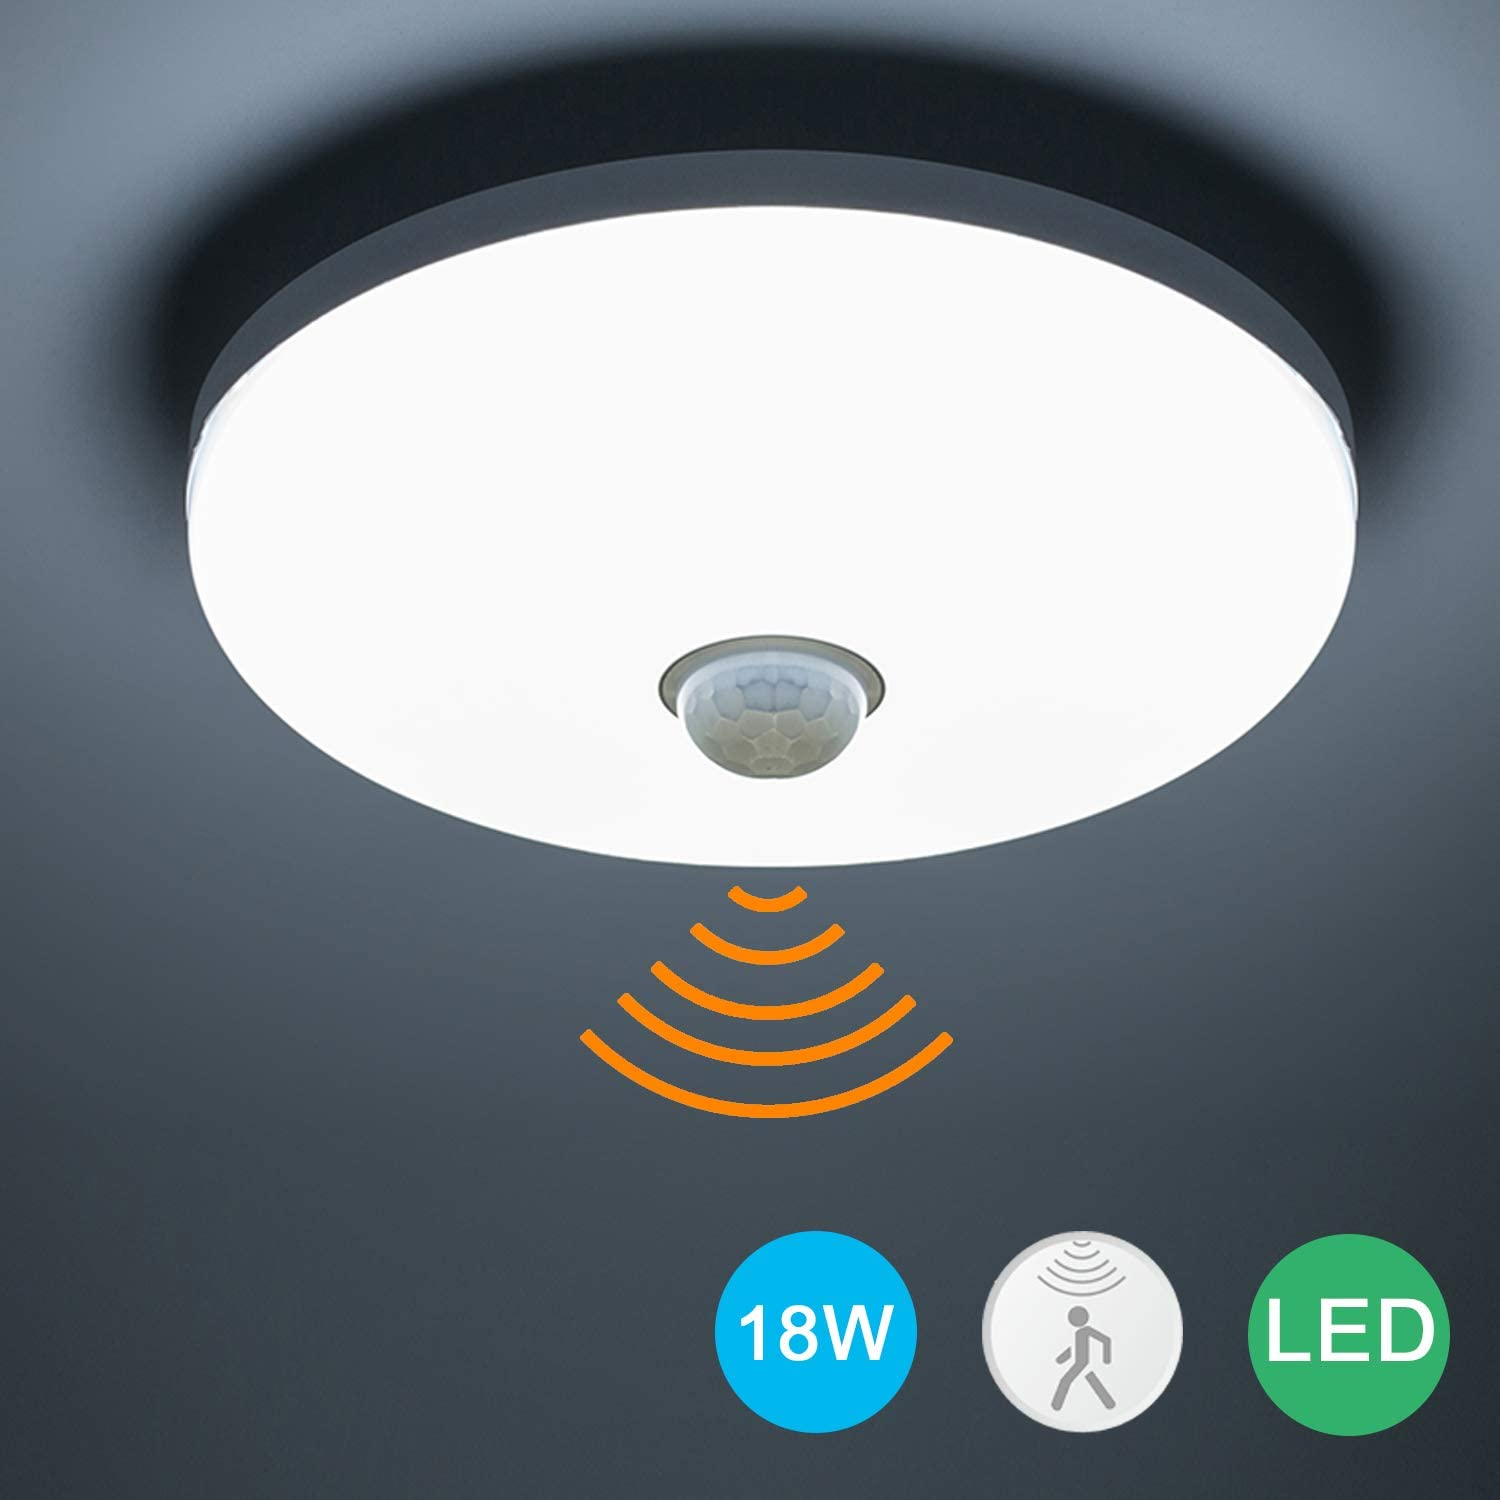 Round 18W LED Ceiling Light Daylight Downlight PIR Infrared Motion Sensor Lamp